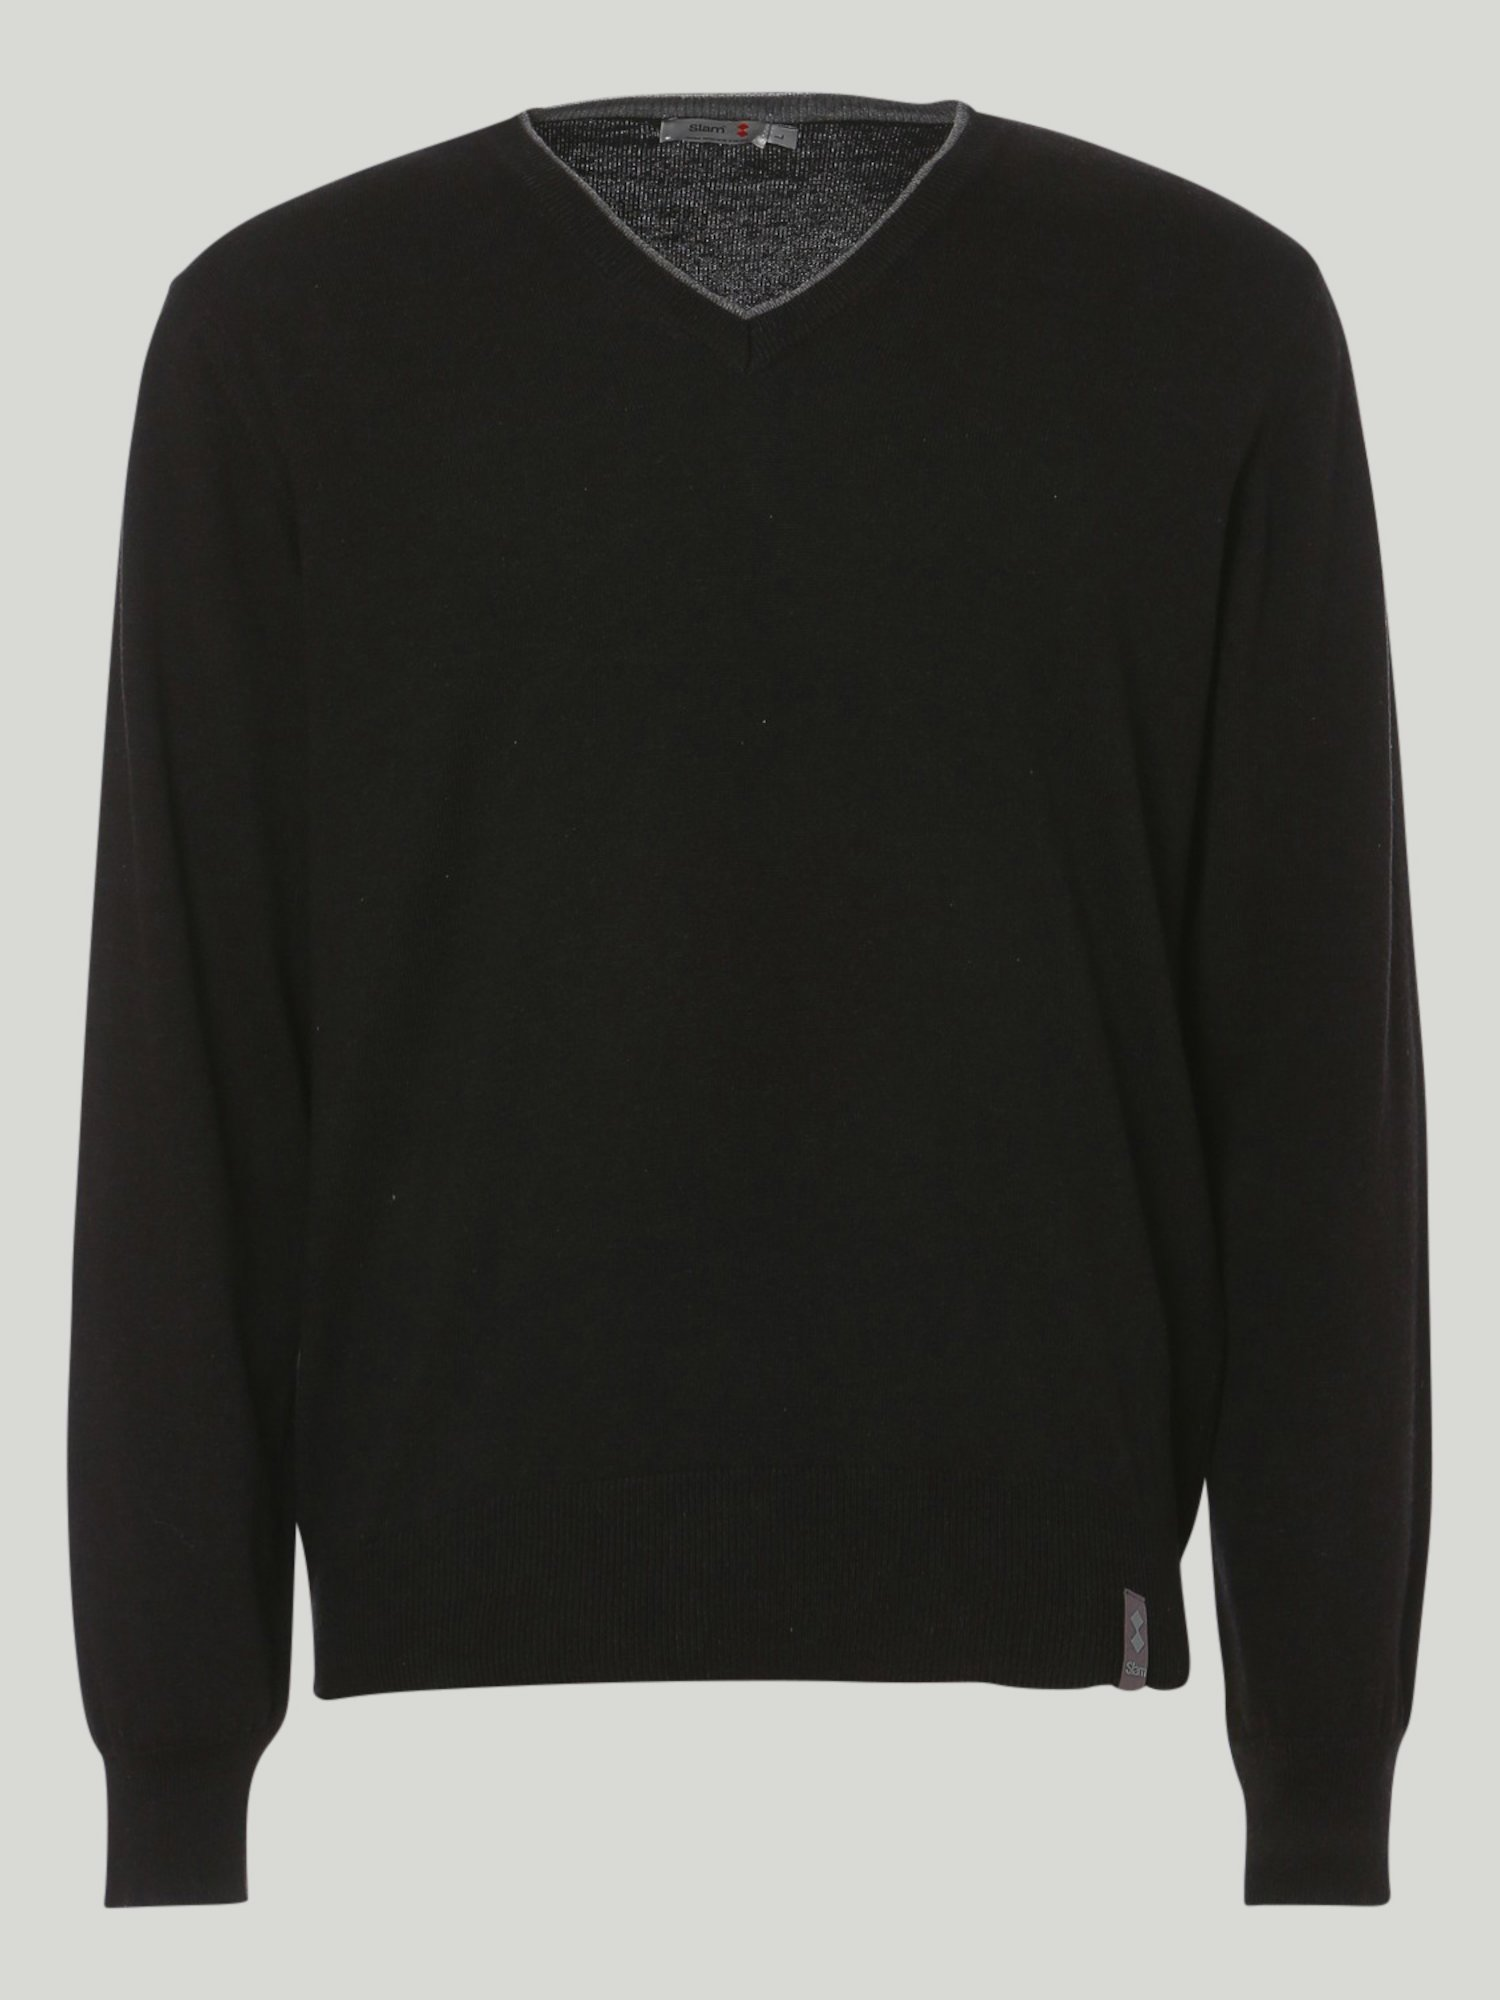 JUMPER COVENTRY NEW - Anthracite